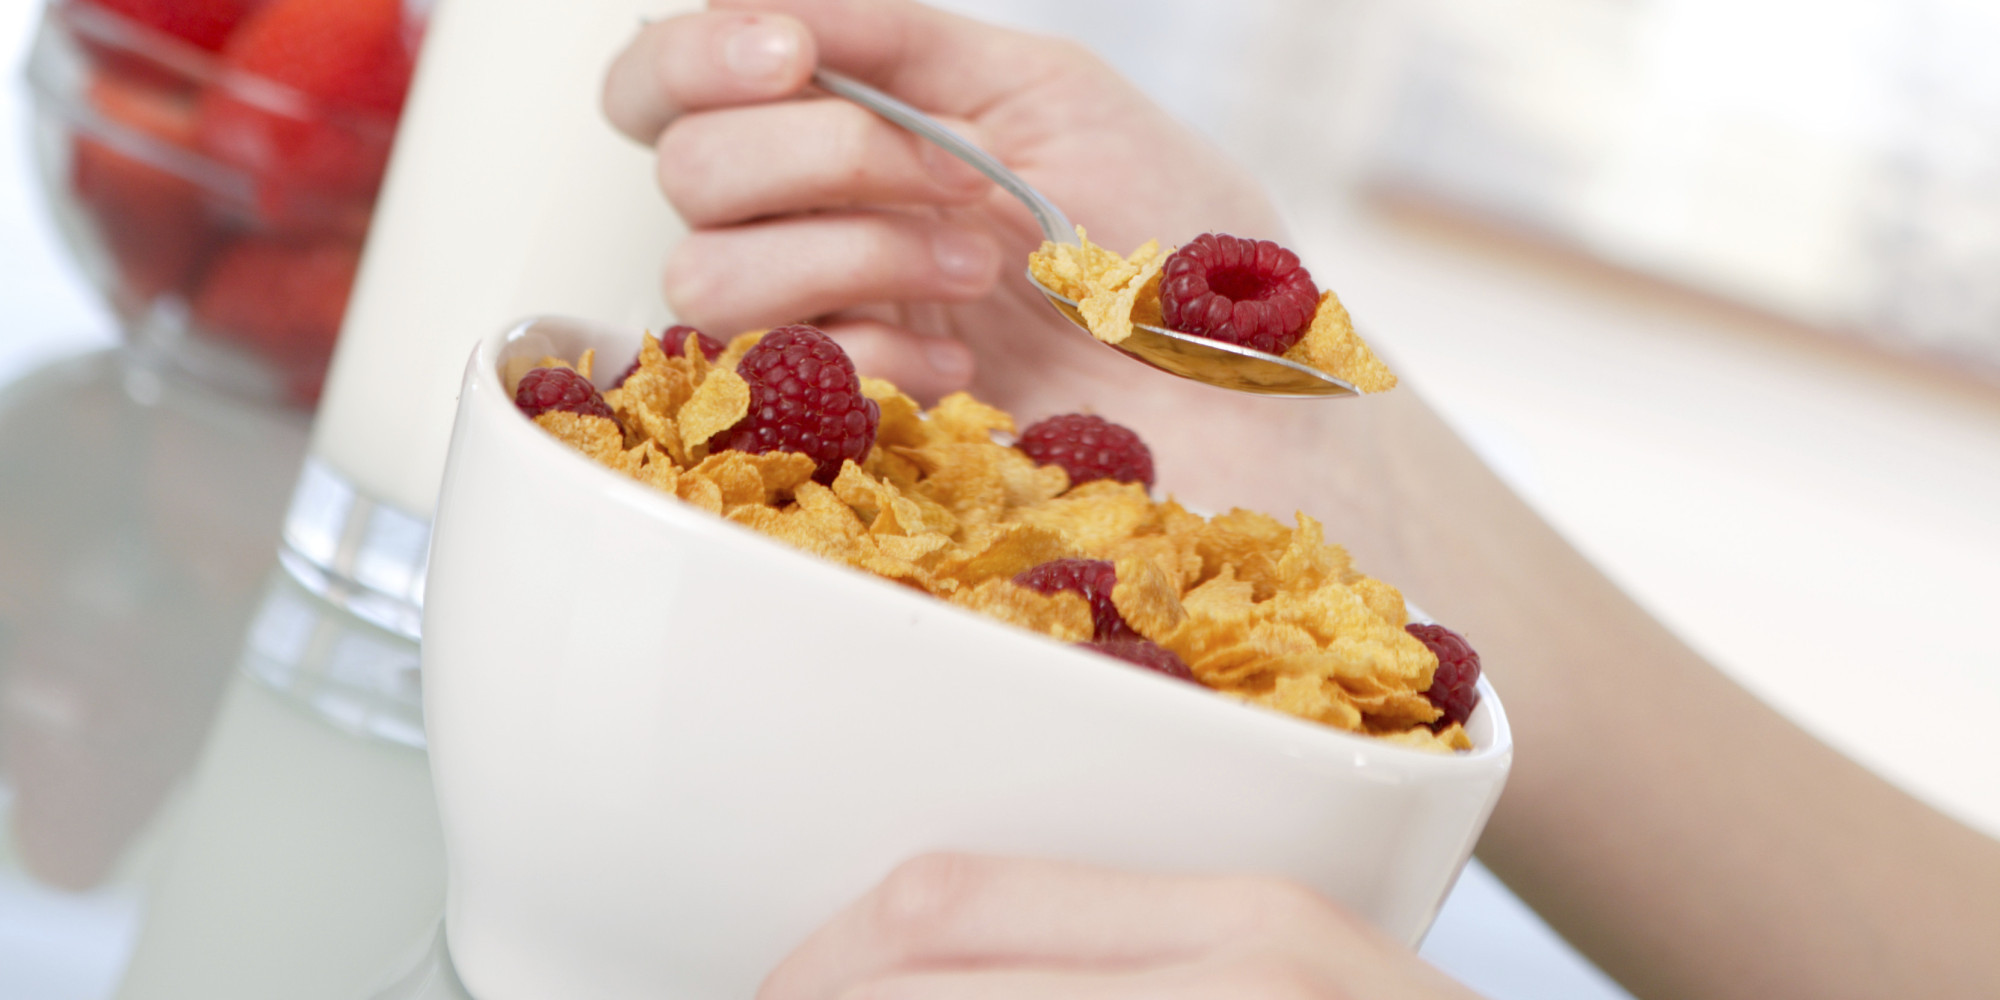 Healthy Breakfast Ideas For Teens  Teens Who Skip Breakfast May Face Metabolic Syndrome Risk